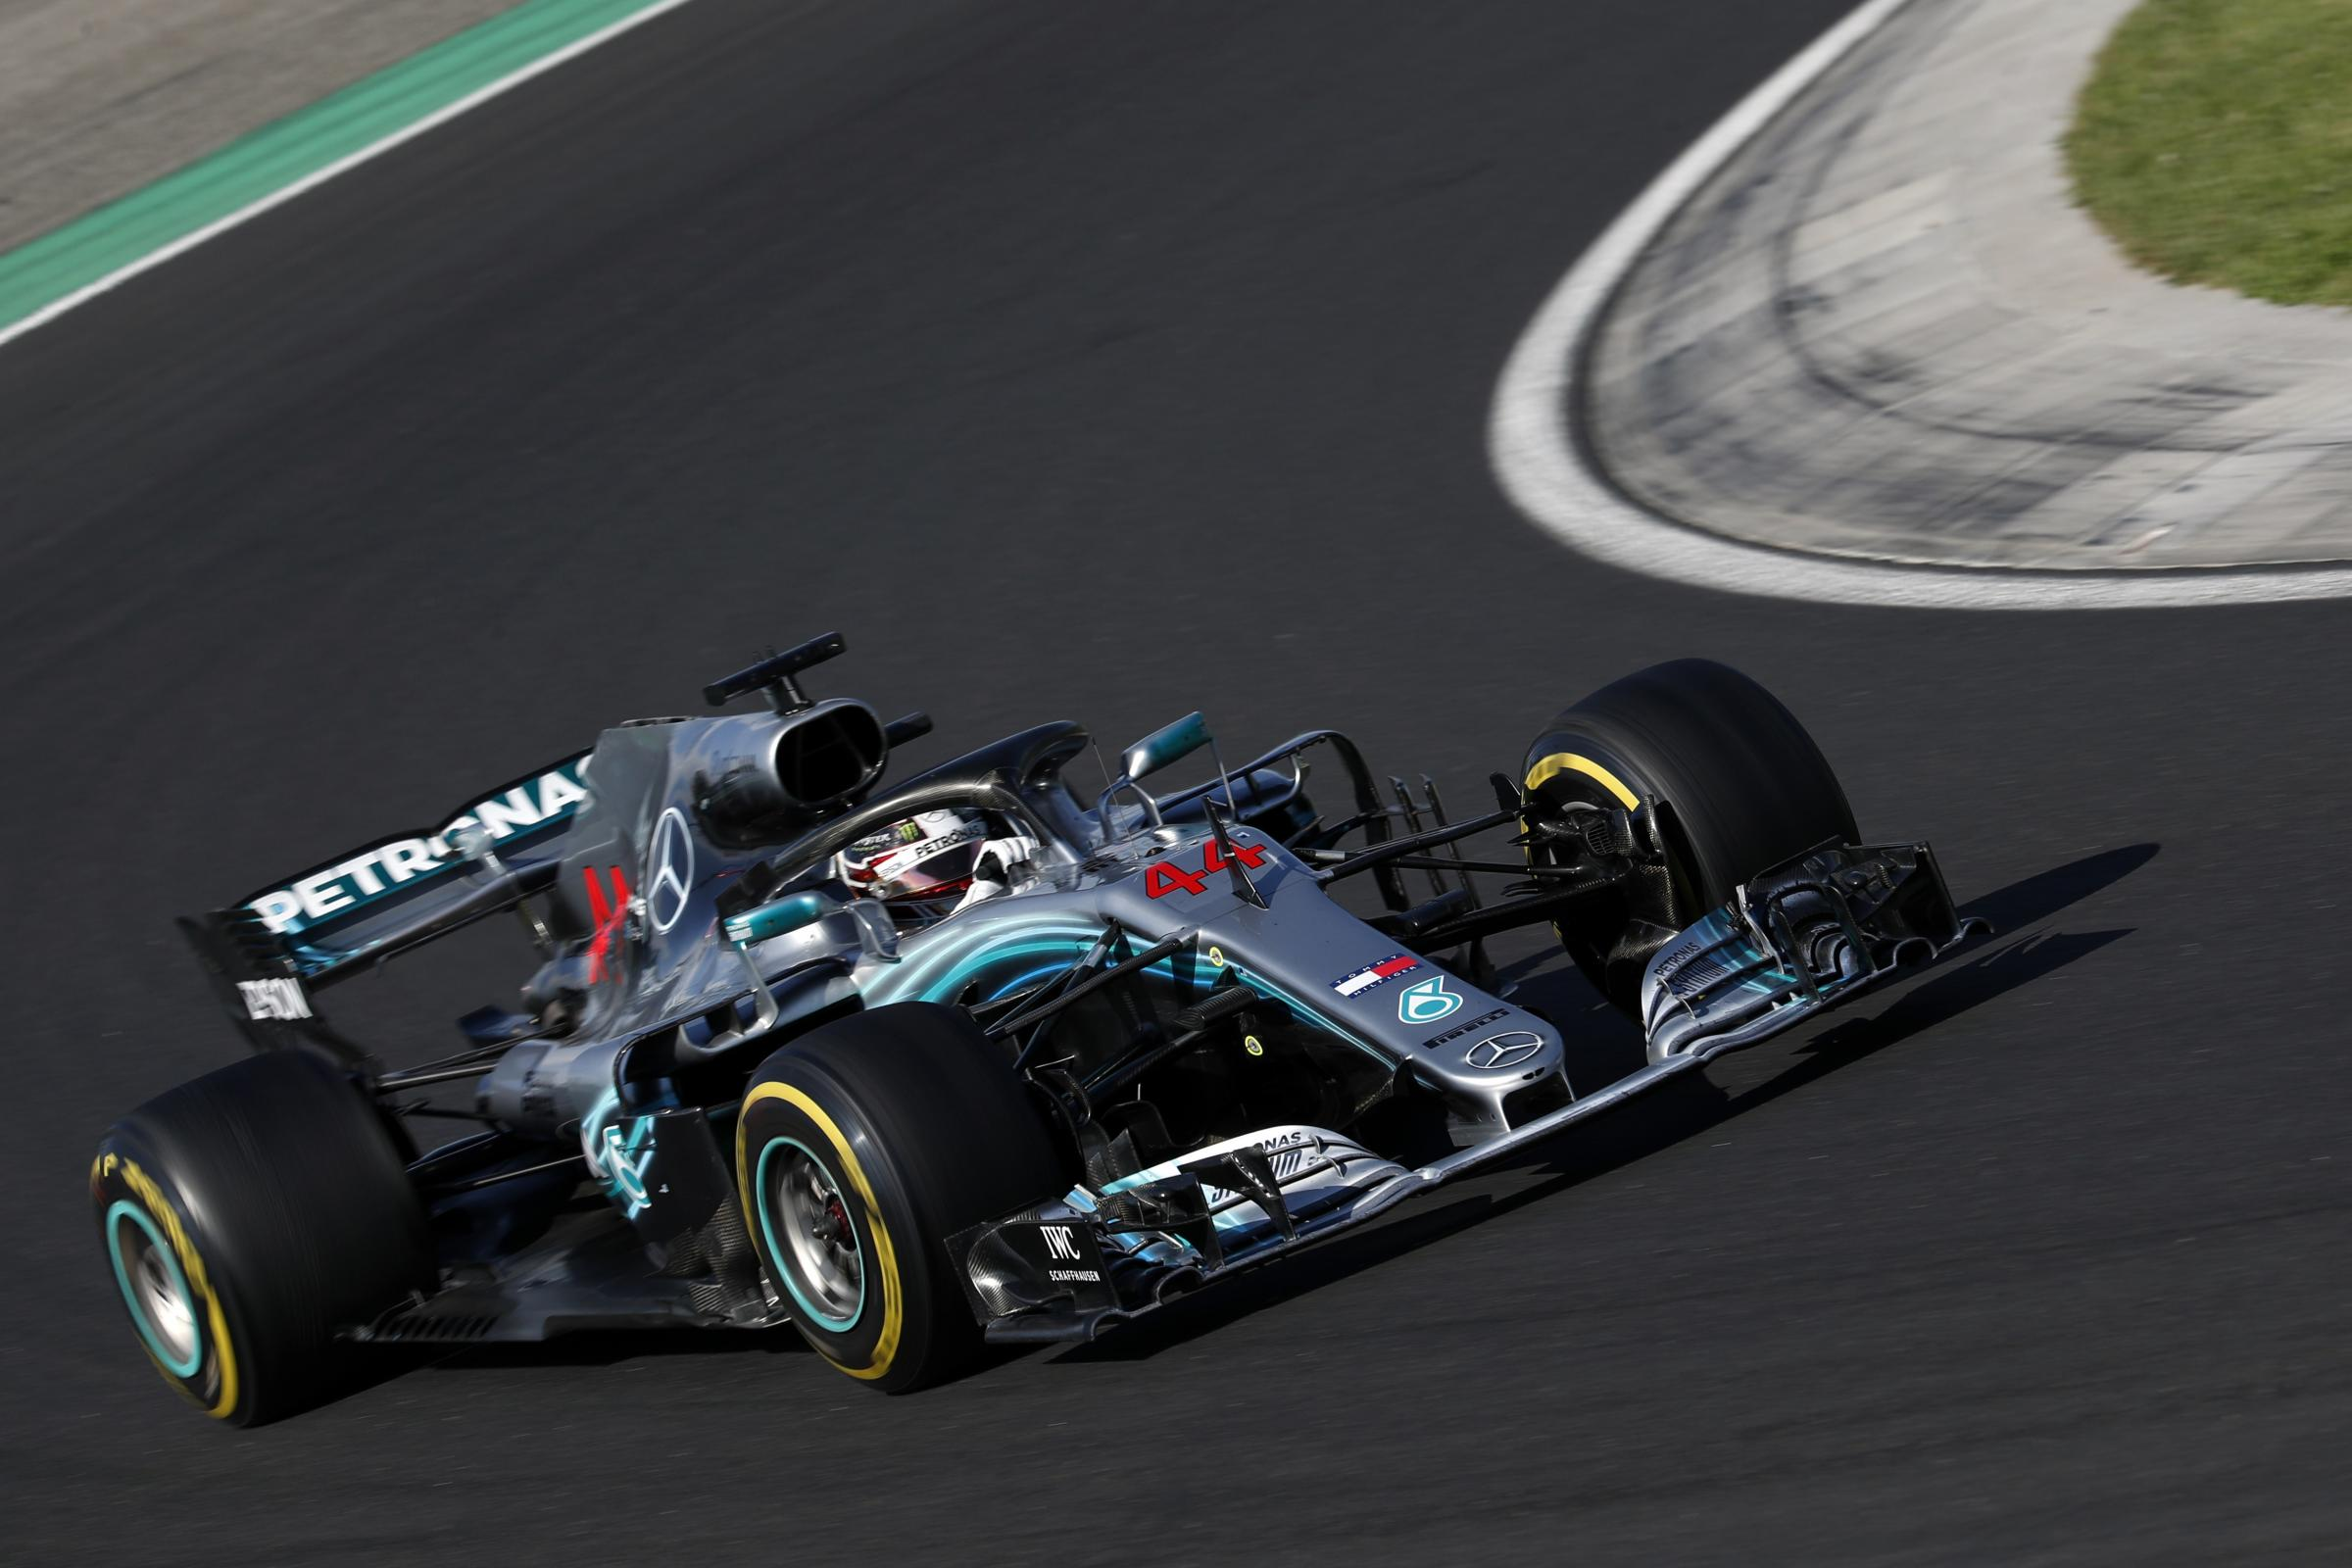 Hamilton wins in Hungary to build overall lead